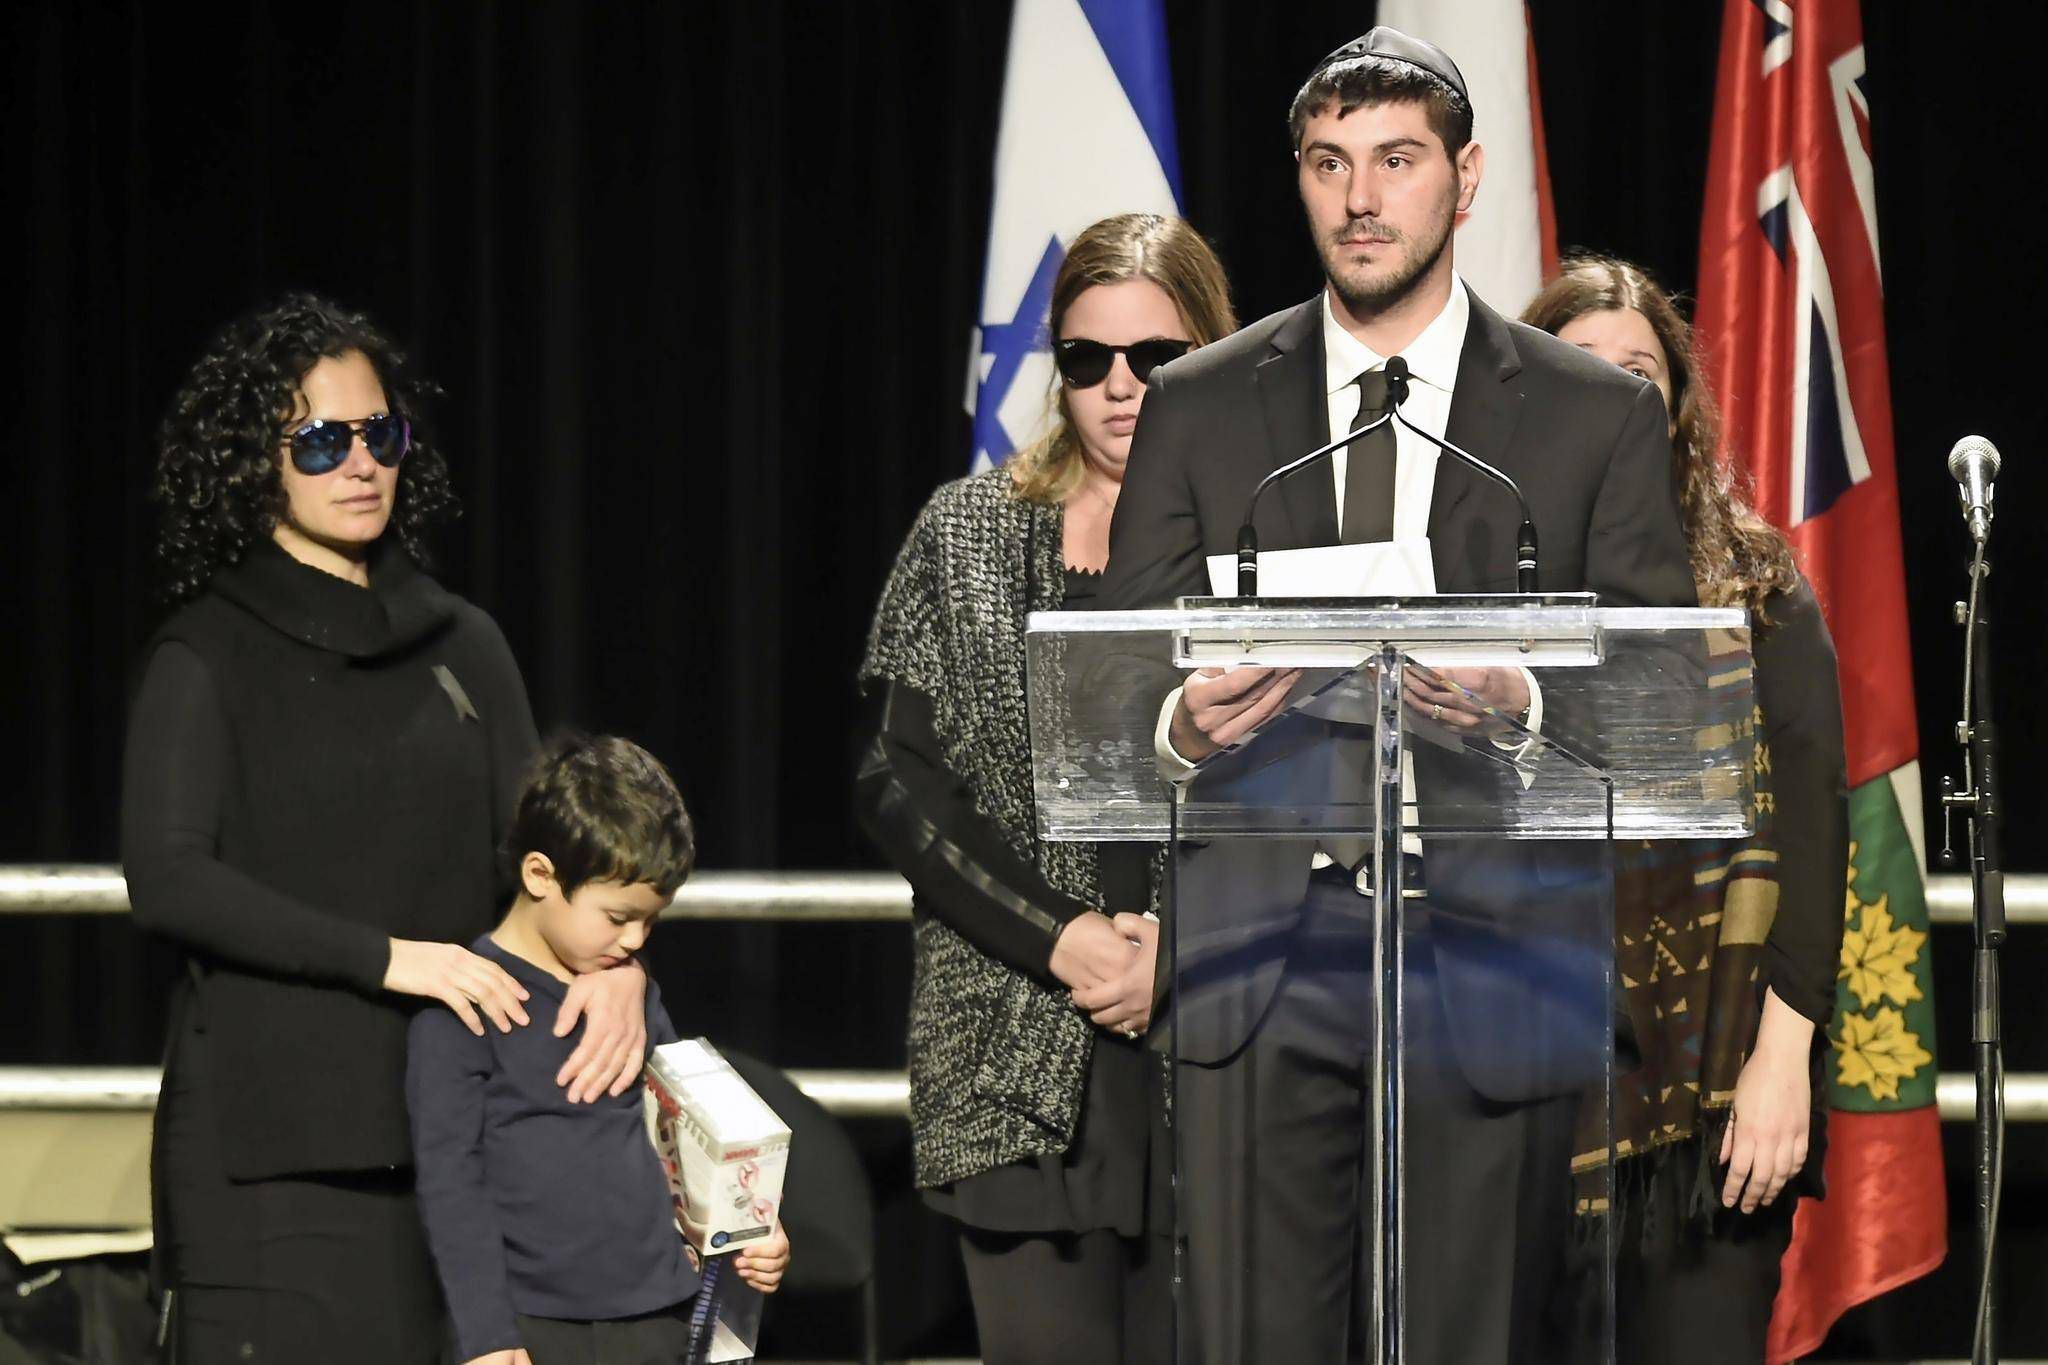 Son of Barry and Honey Sherman delivers a tearful and angry